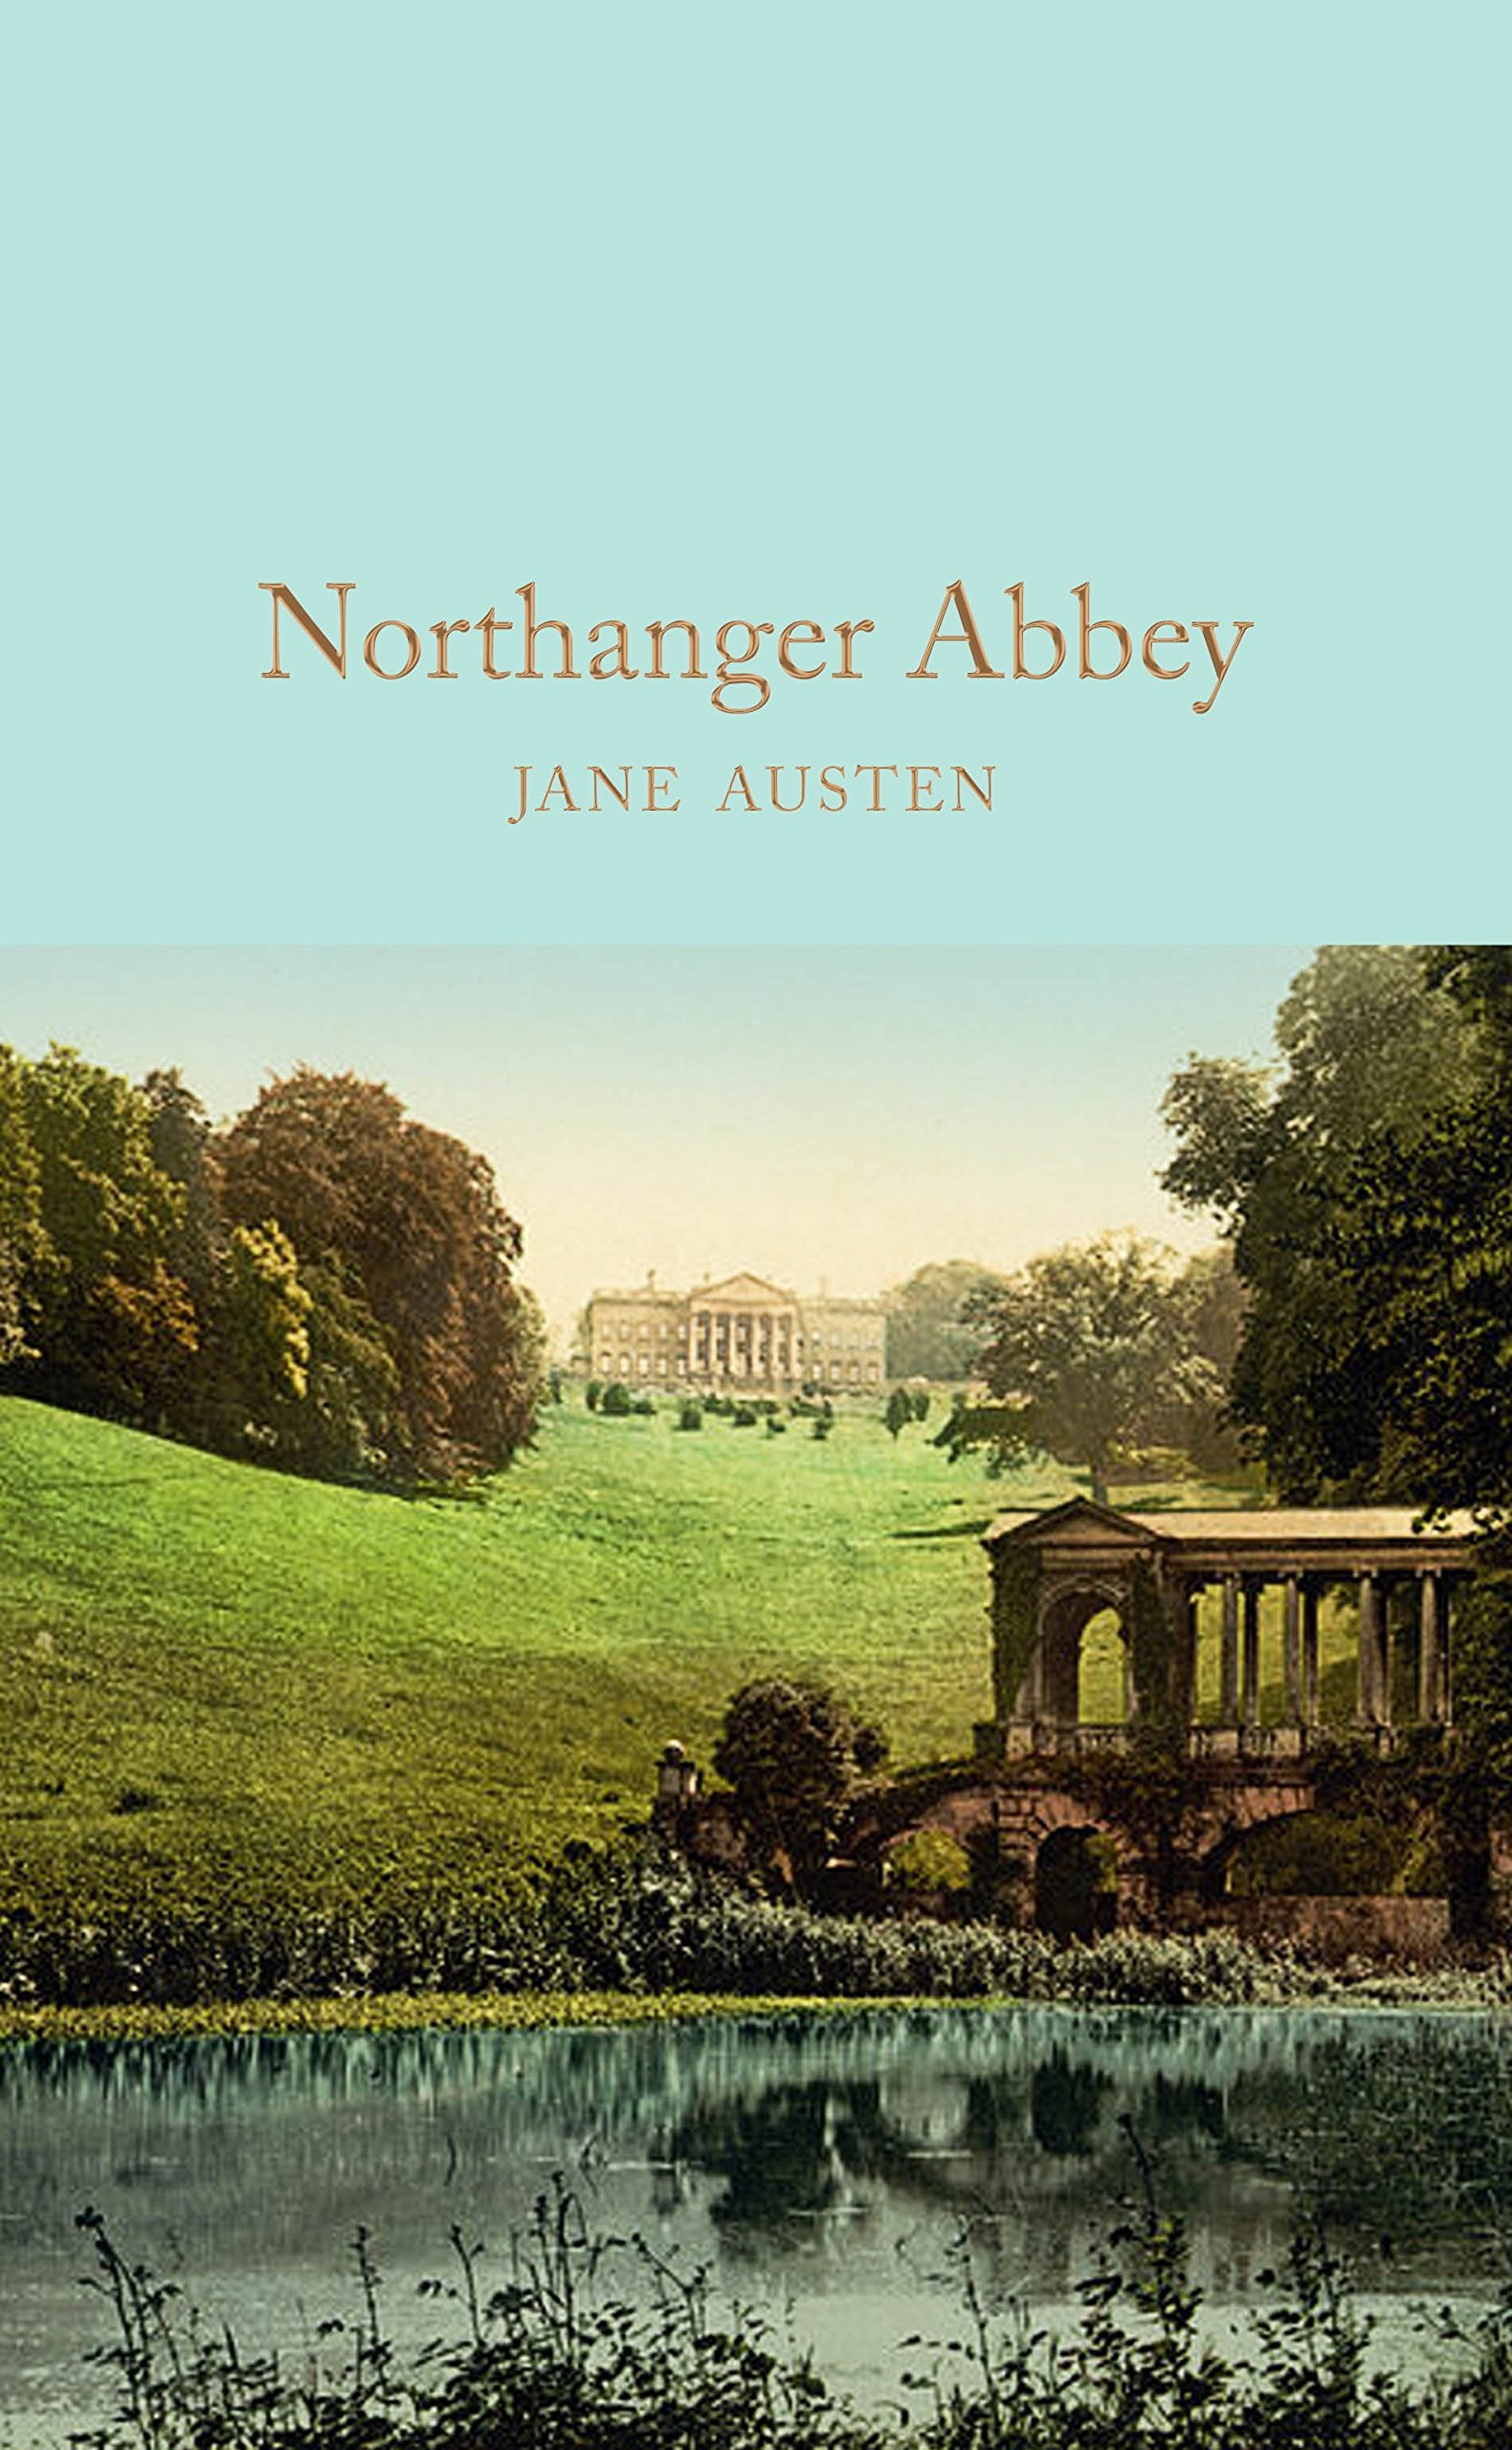 Northanger Abbey (Macmillan Collector's Library): Amazon.co.uk: Jane  Austen: 9781909621671: Books